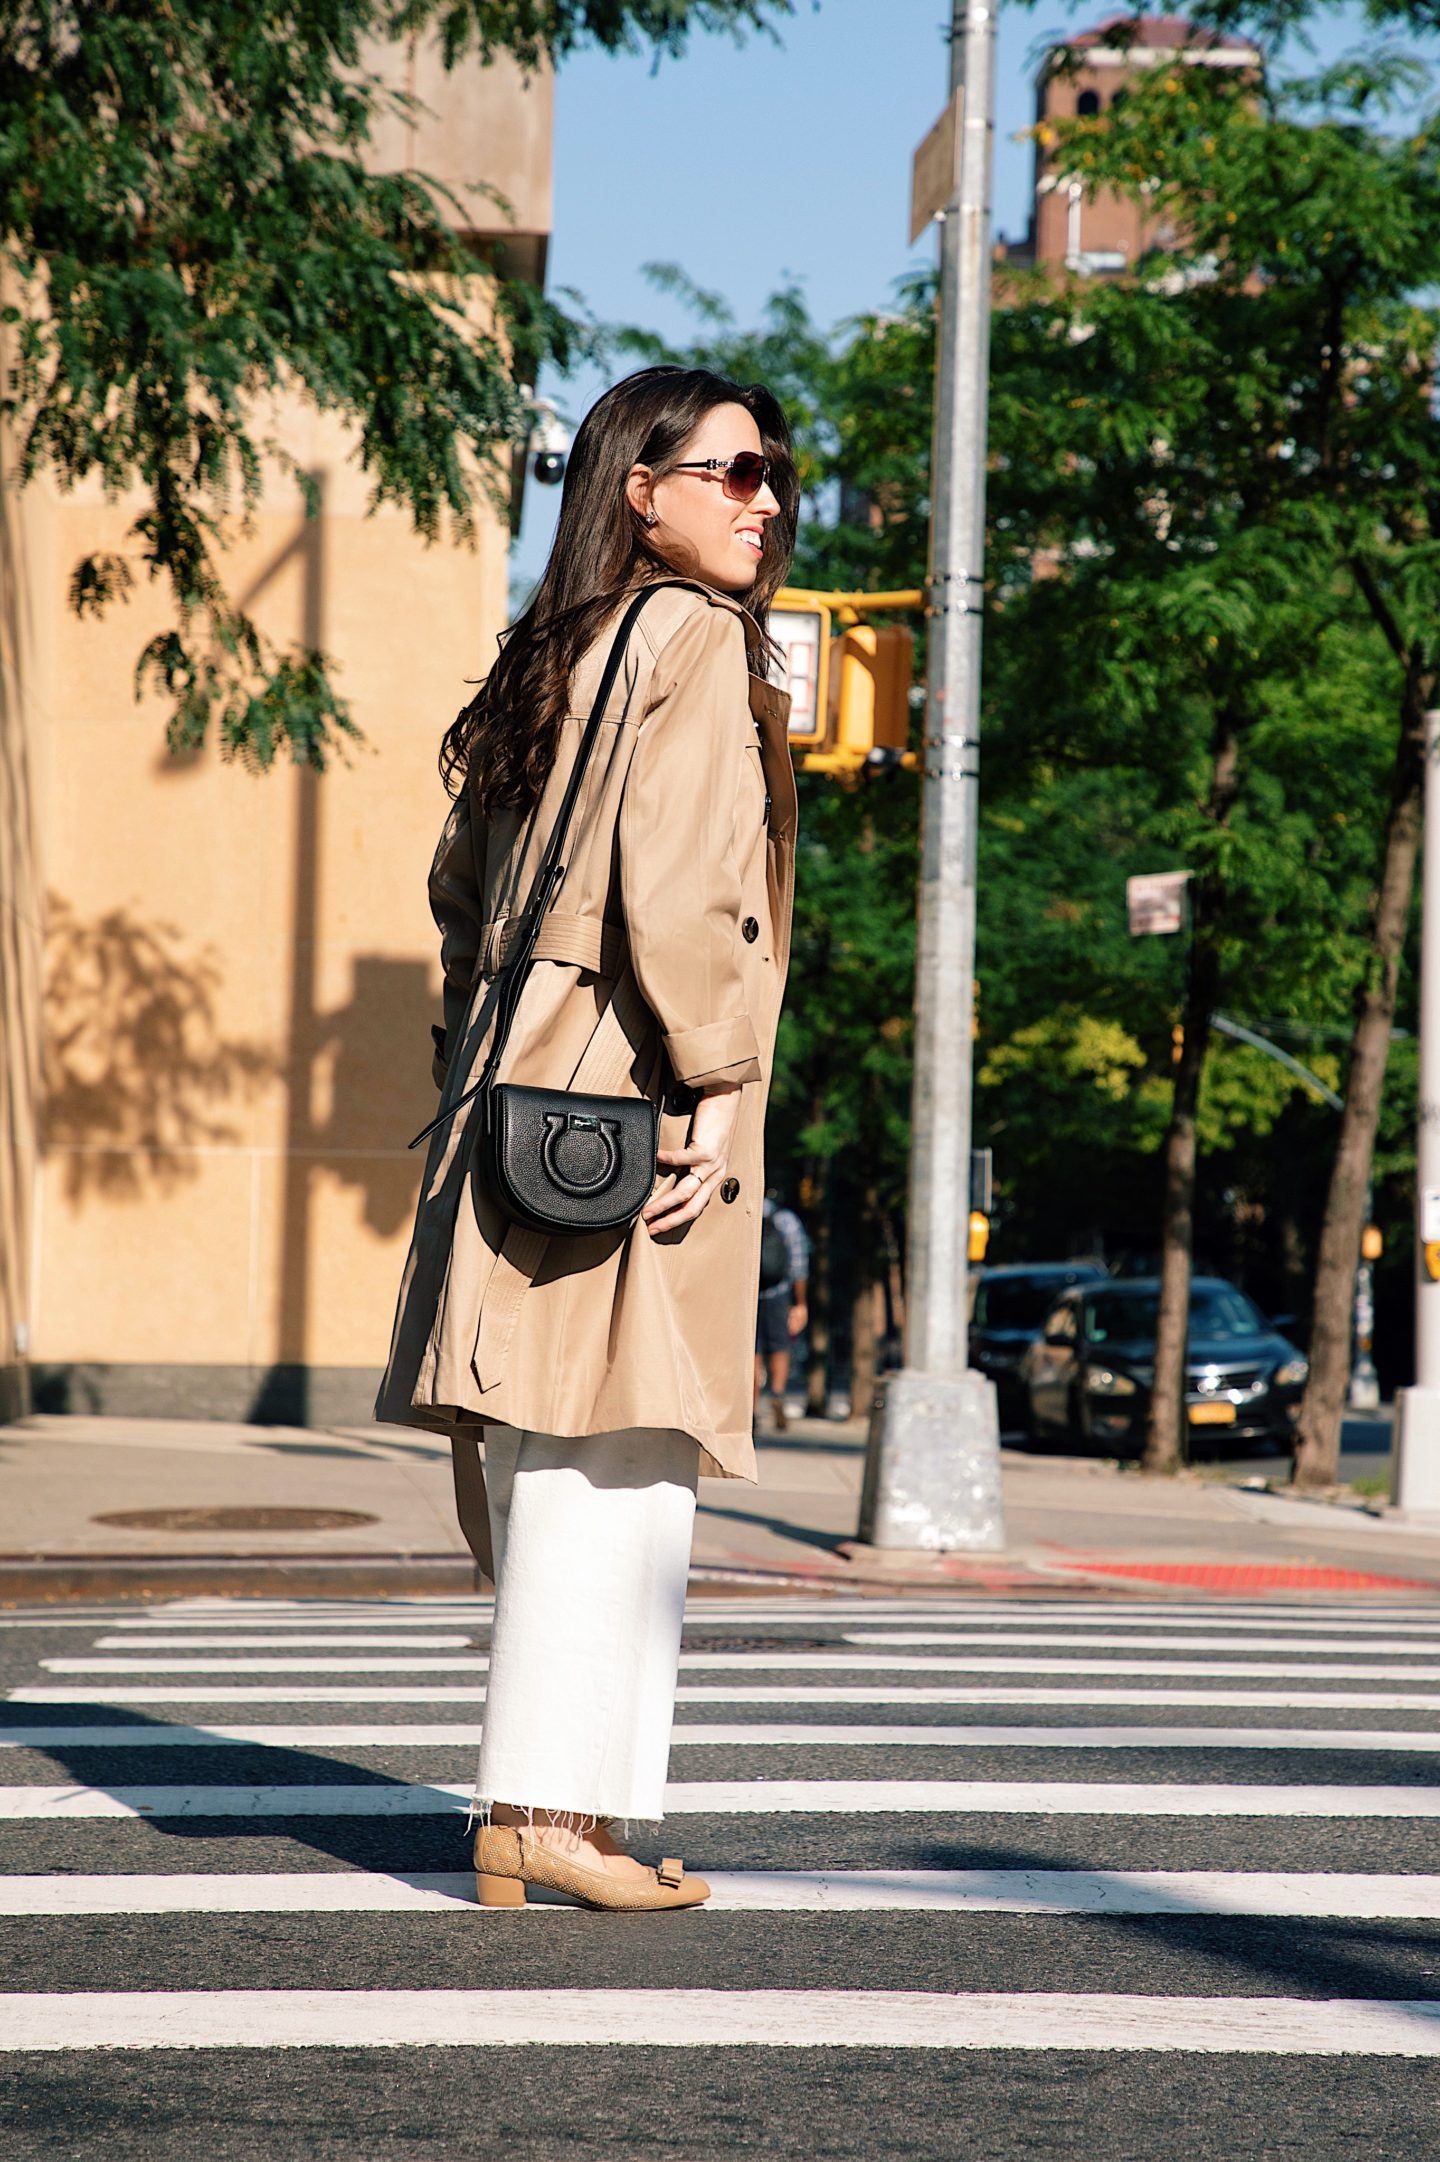 Ana Florentina wearing London Fog Trench Coat with white jeans a black top